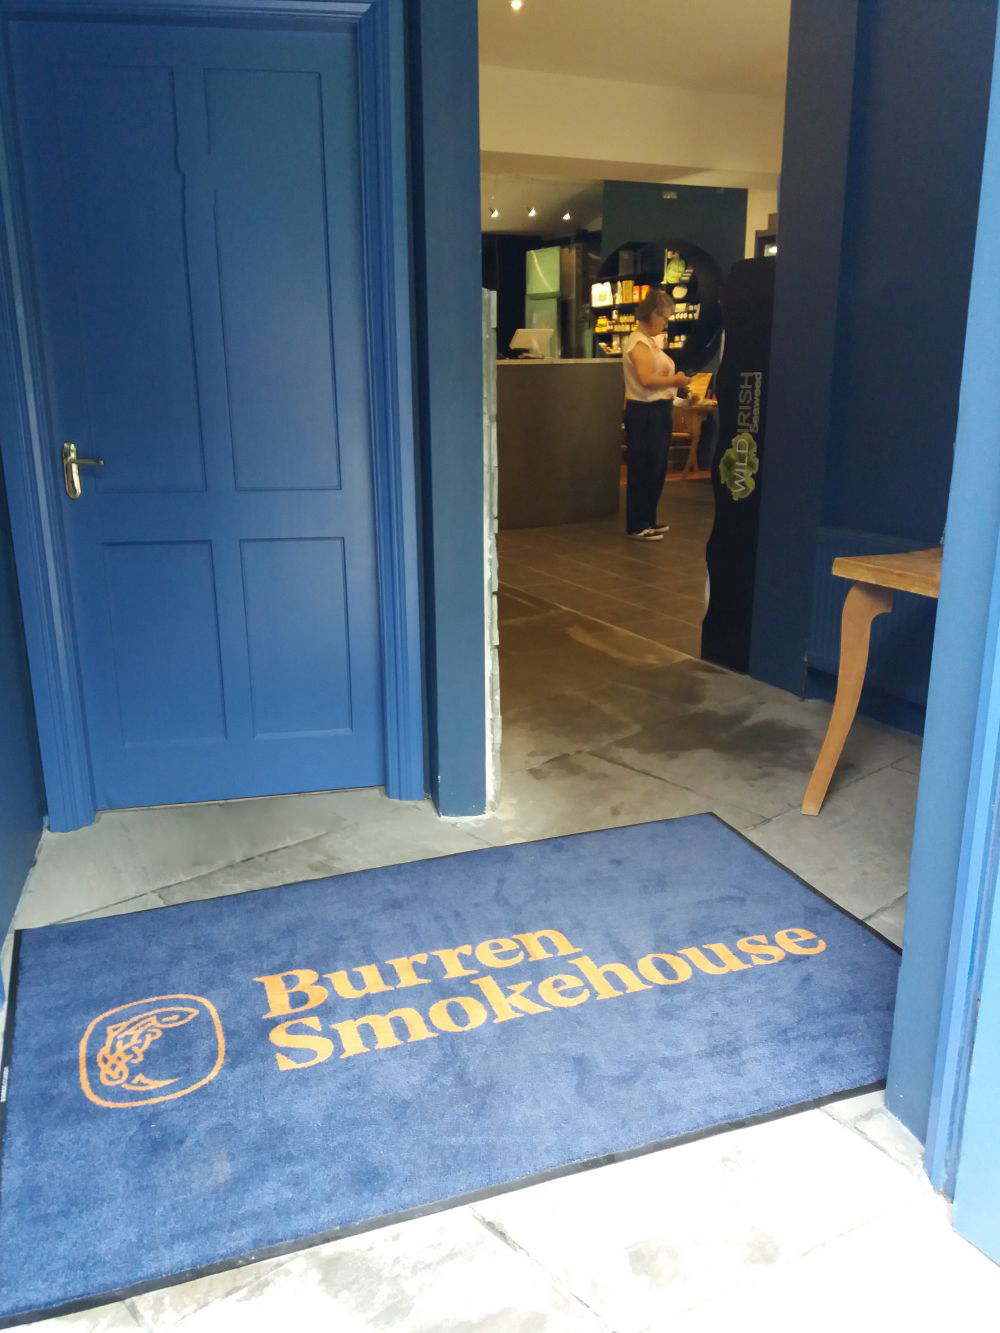 Burren Smokehouse branded entrance mate